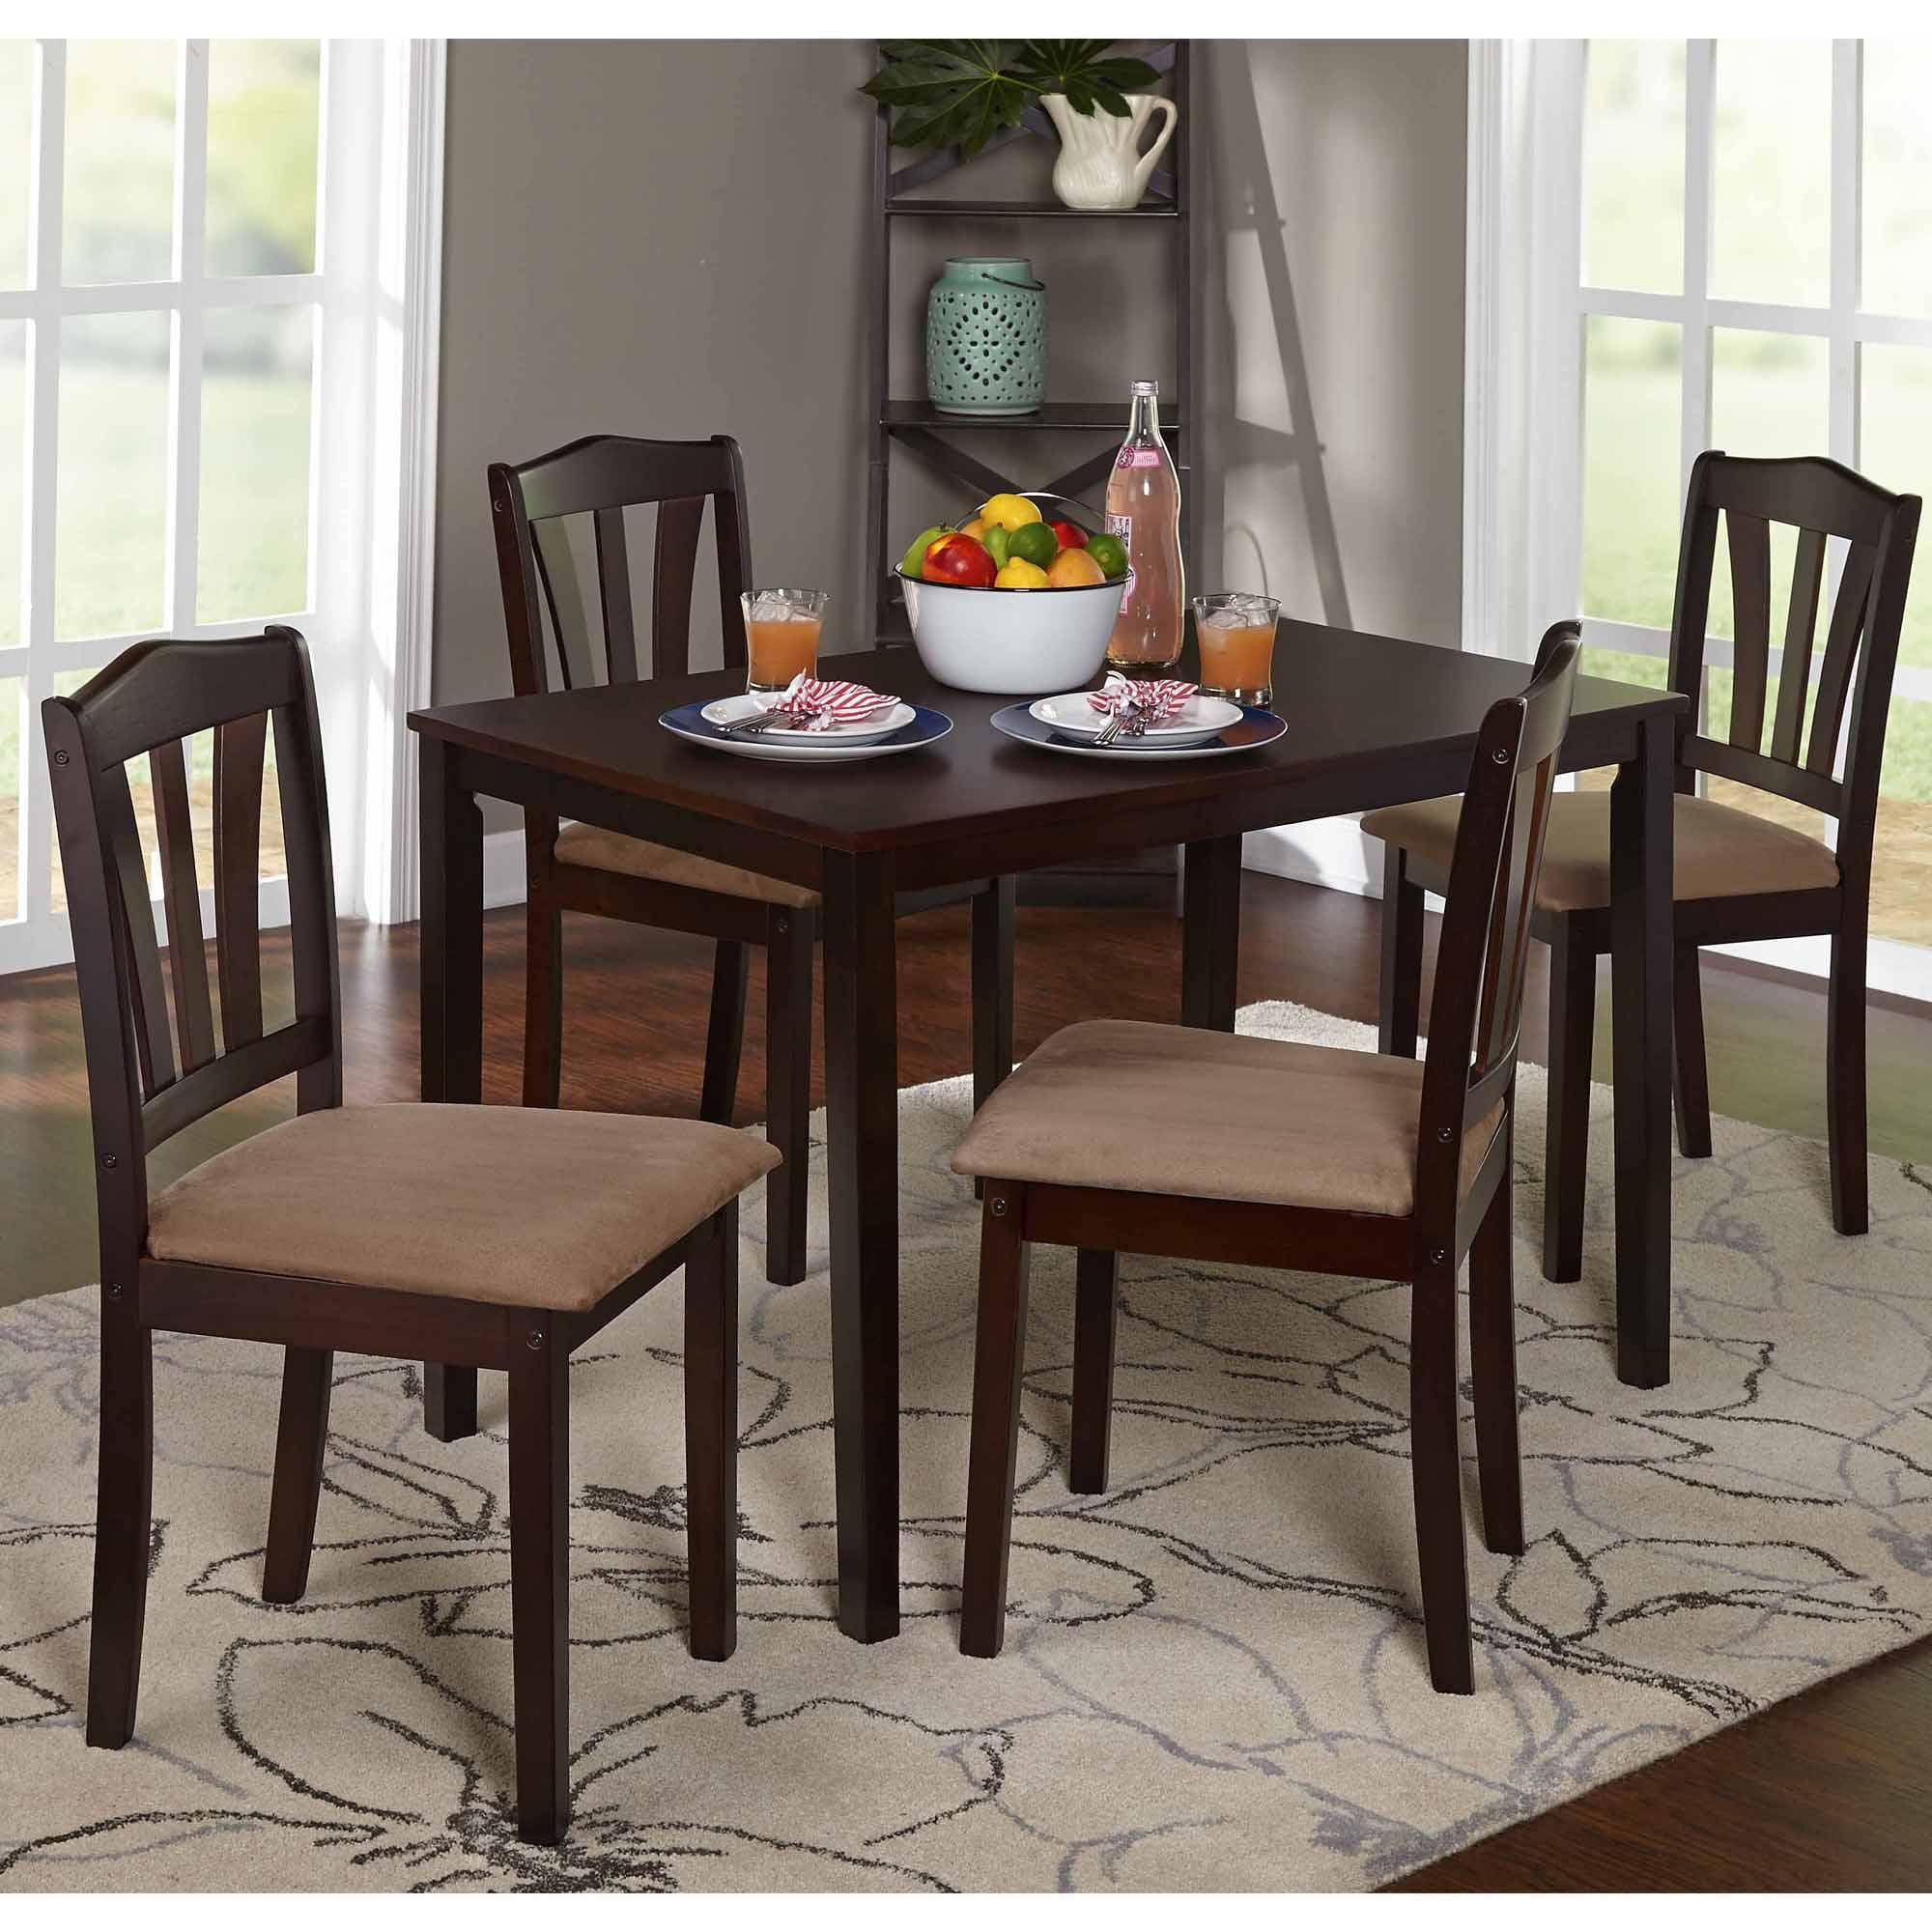 Mainstays 5 Piece Counter Height Dining Set Black Walmart